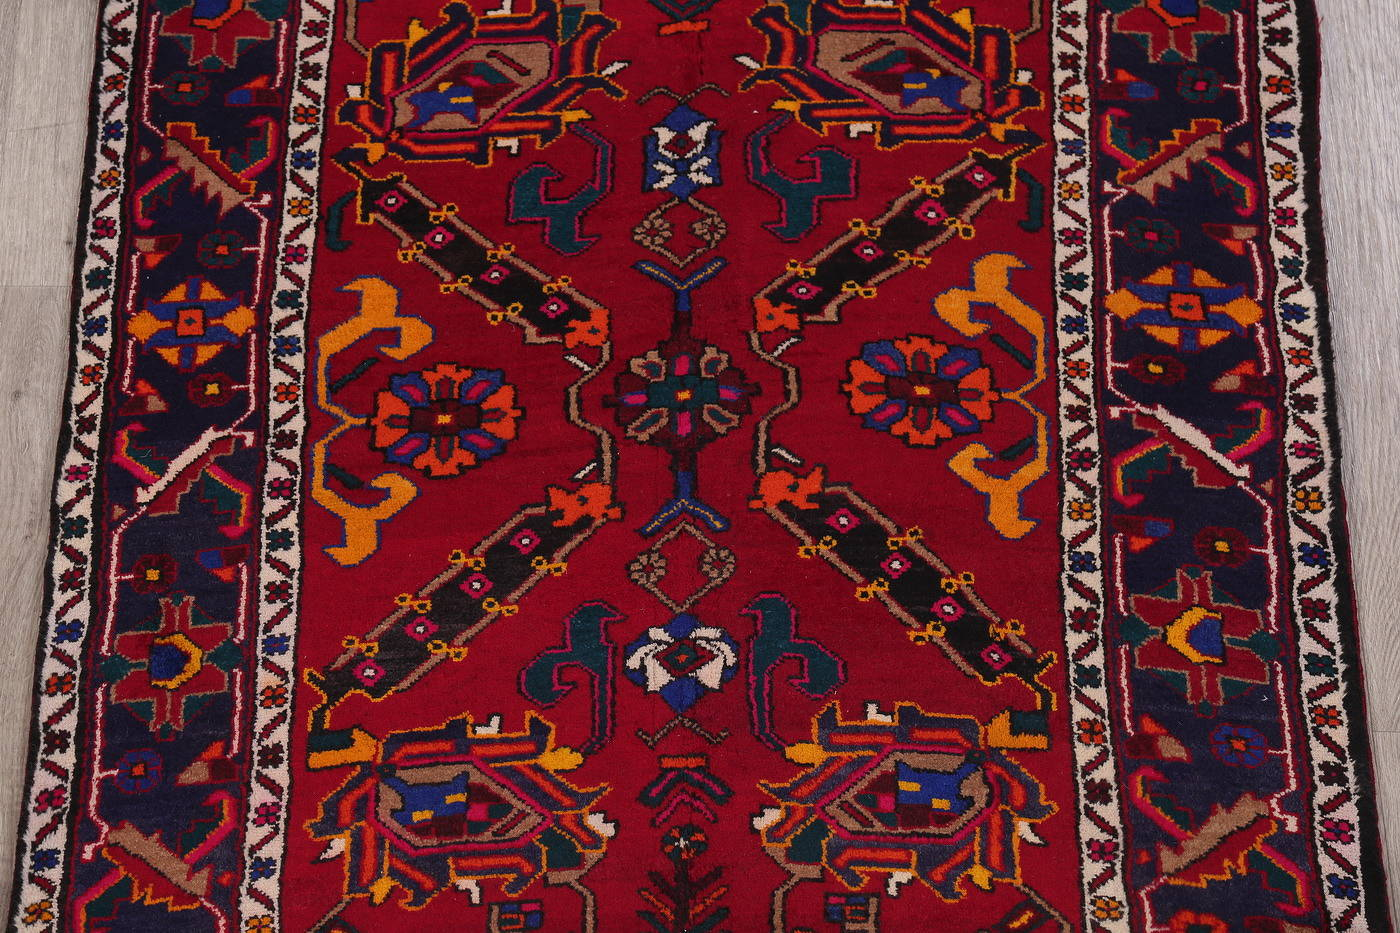 Red Floral Geometric Heriz Persian Runner Rug 4x14